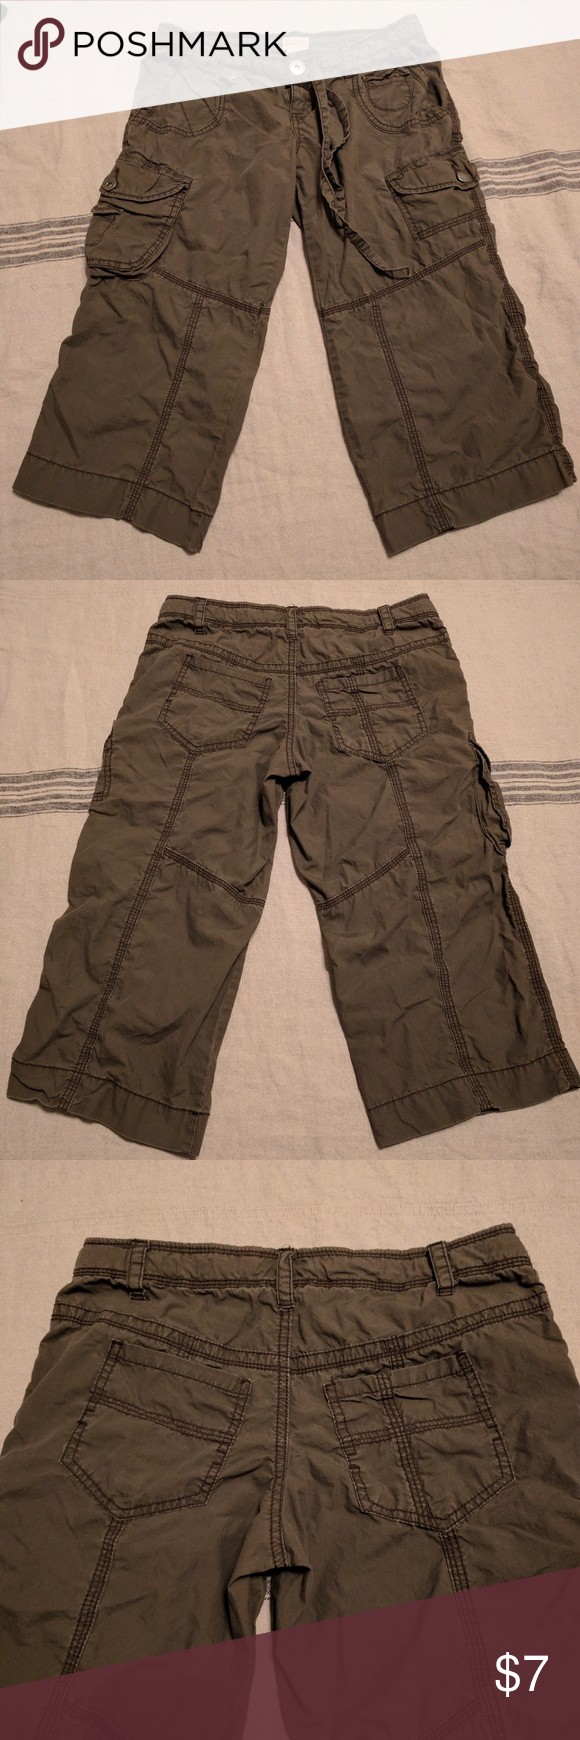 Cargo Bermudas With Images Fashion Trends Fashion Clothes Design